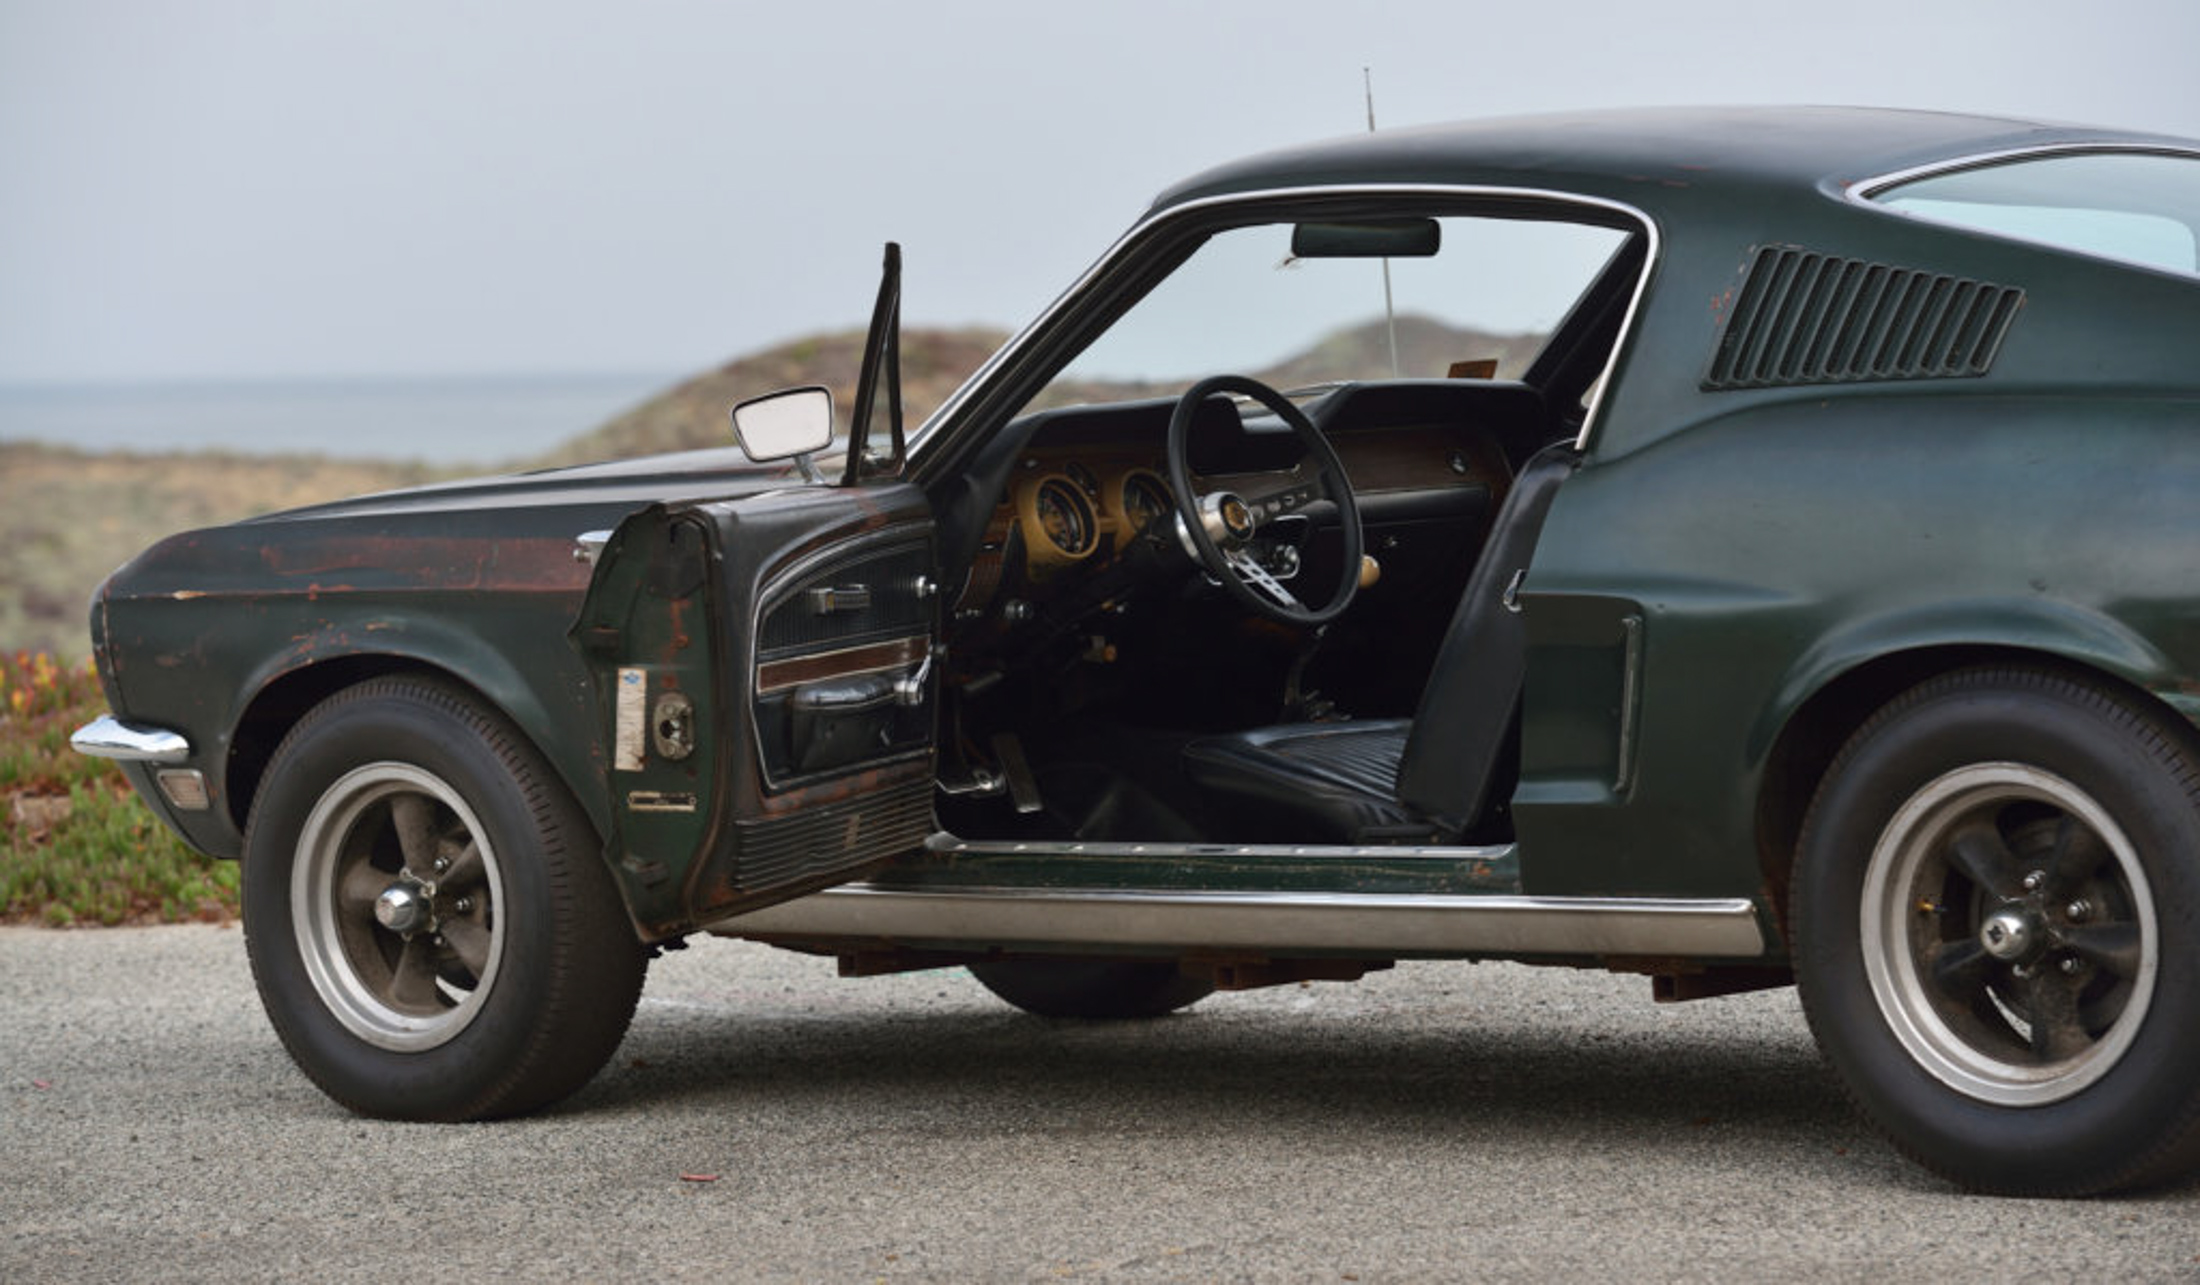 relates to Steve McQueen's Bullitt Mustang Sells for $3.4 Million